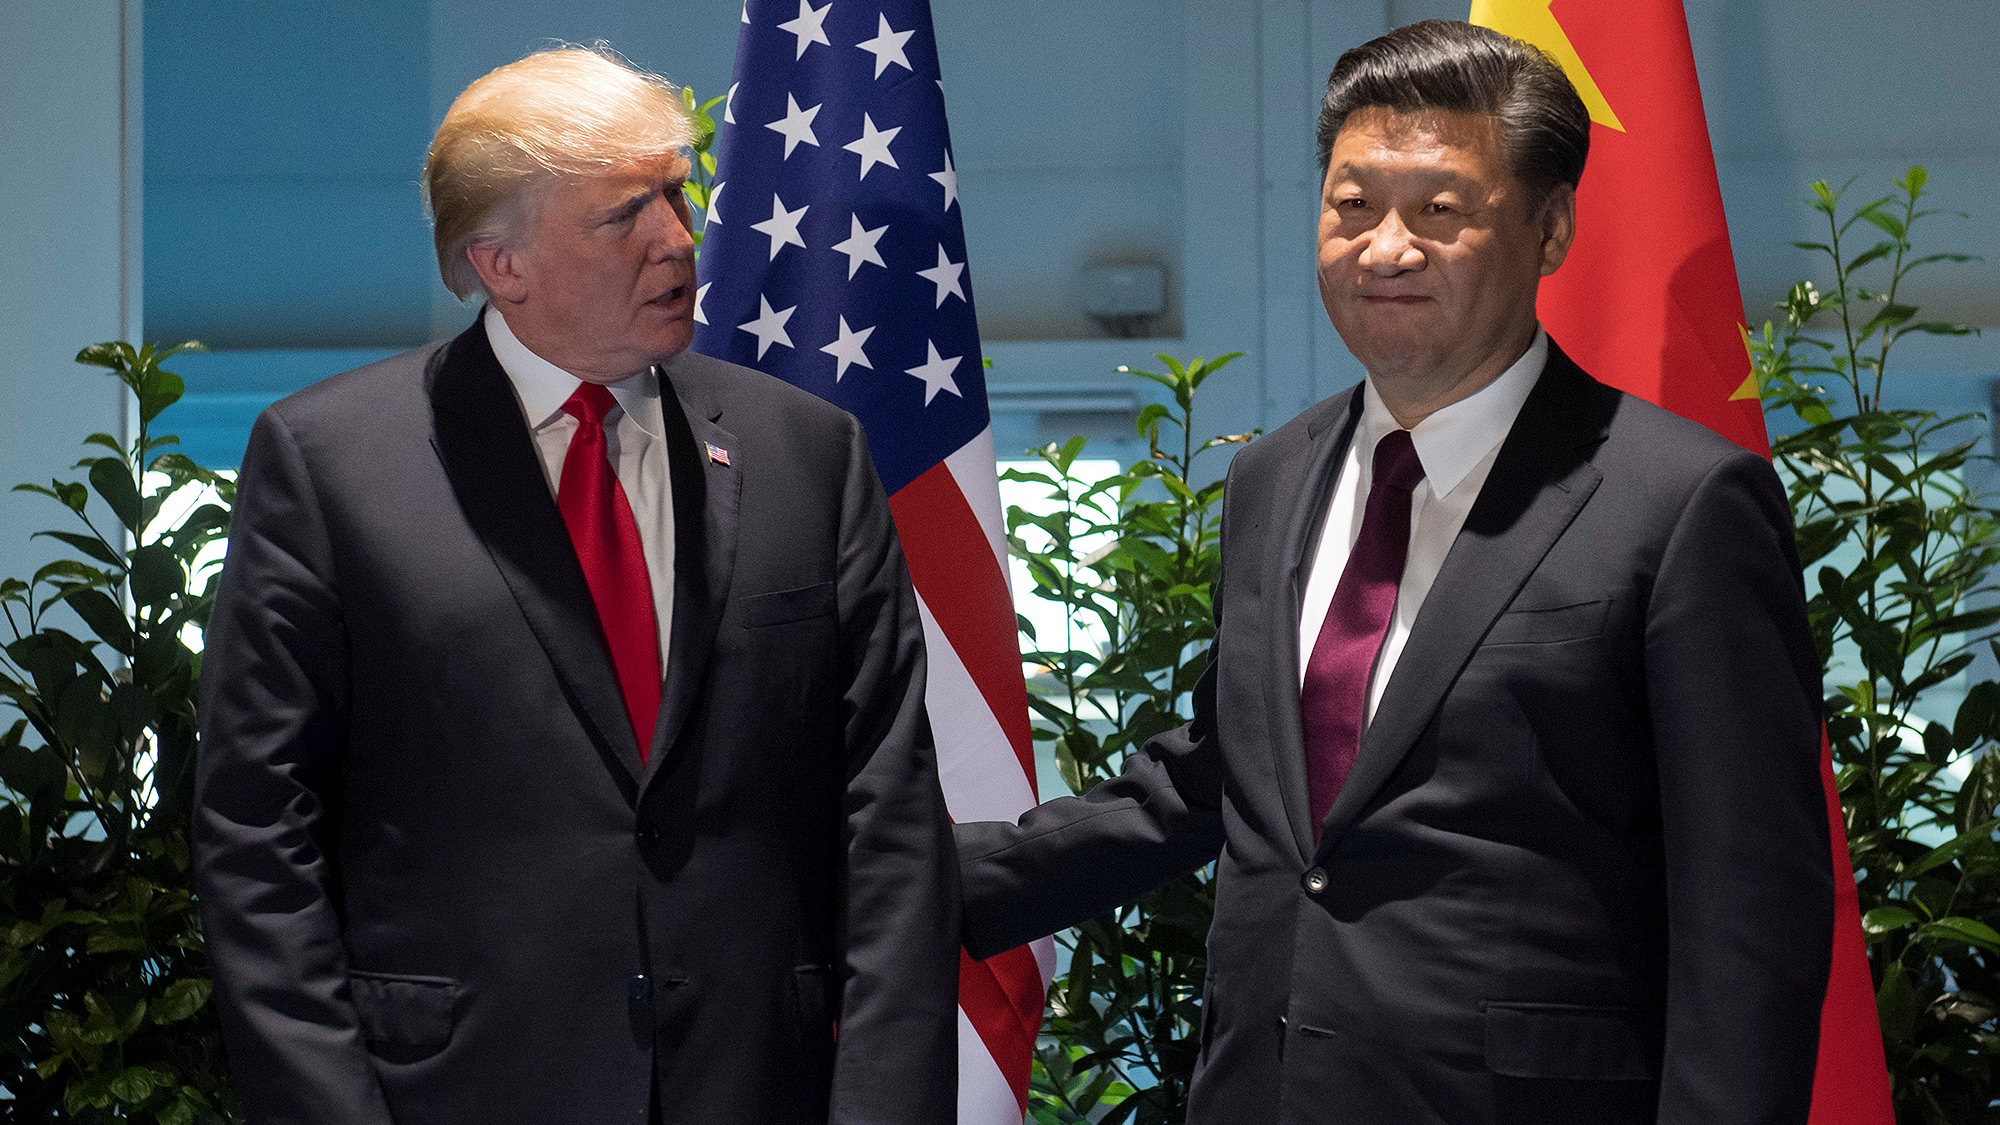 Reunión de Xi y Trump en G20, de 'gran importancia' para resolver disputa: China